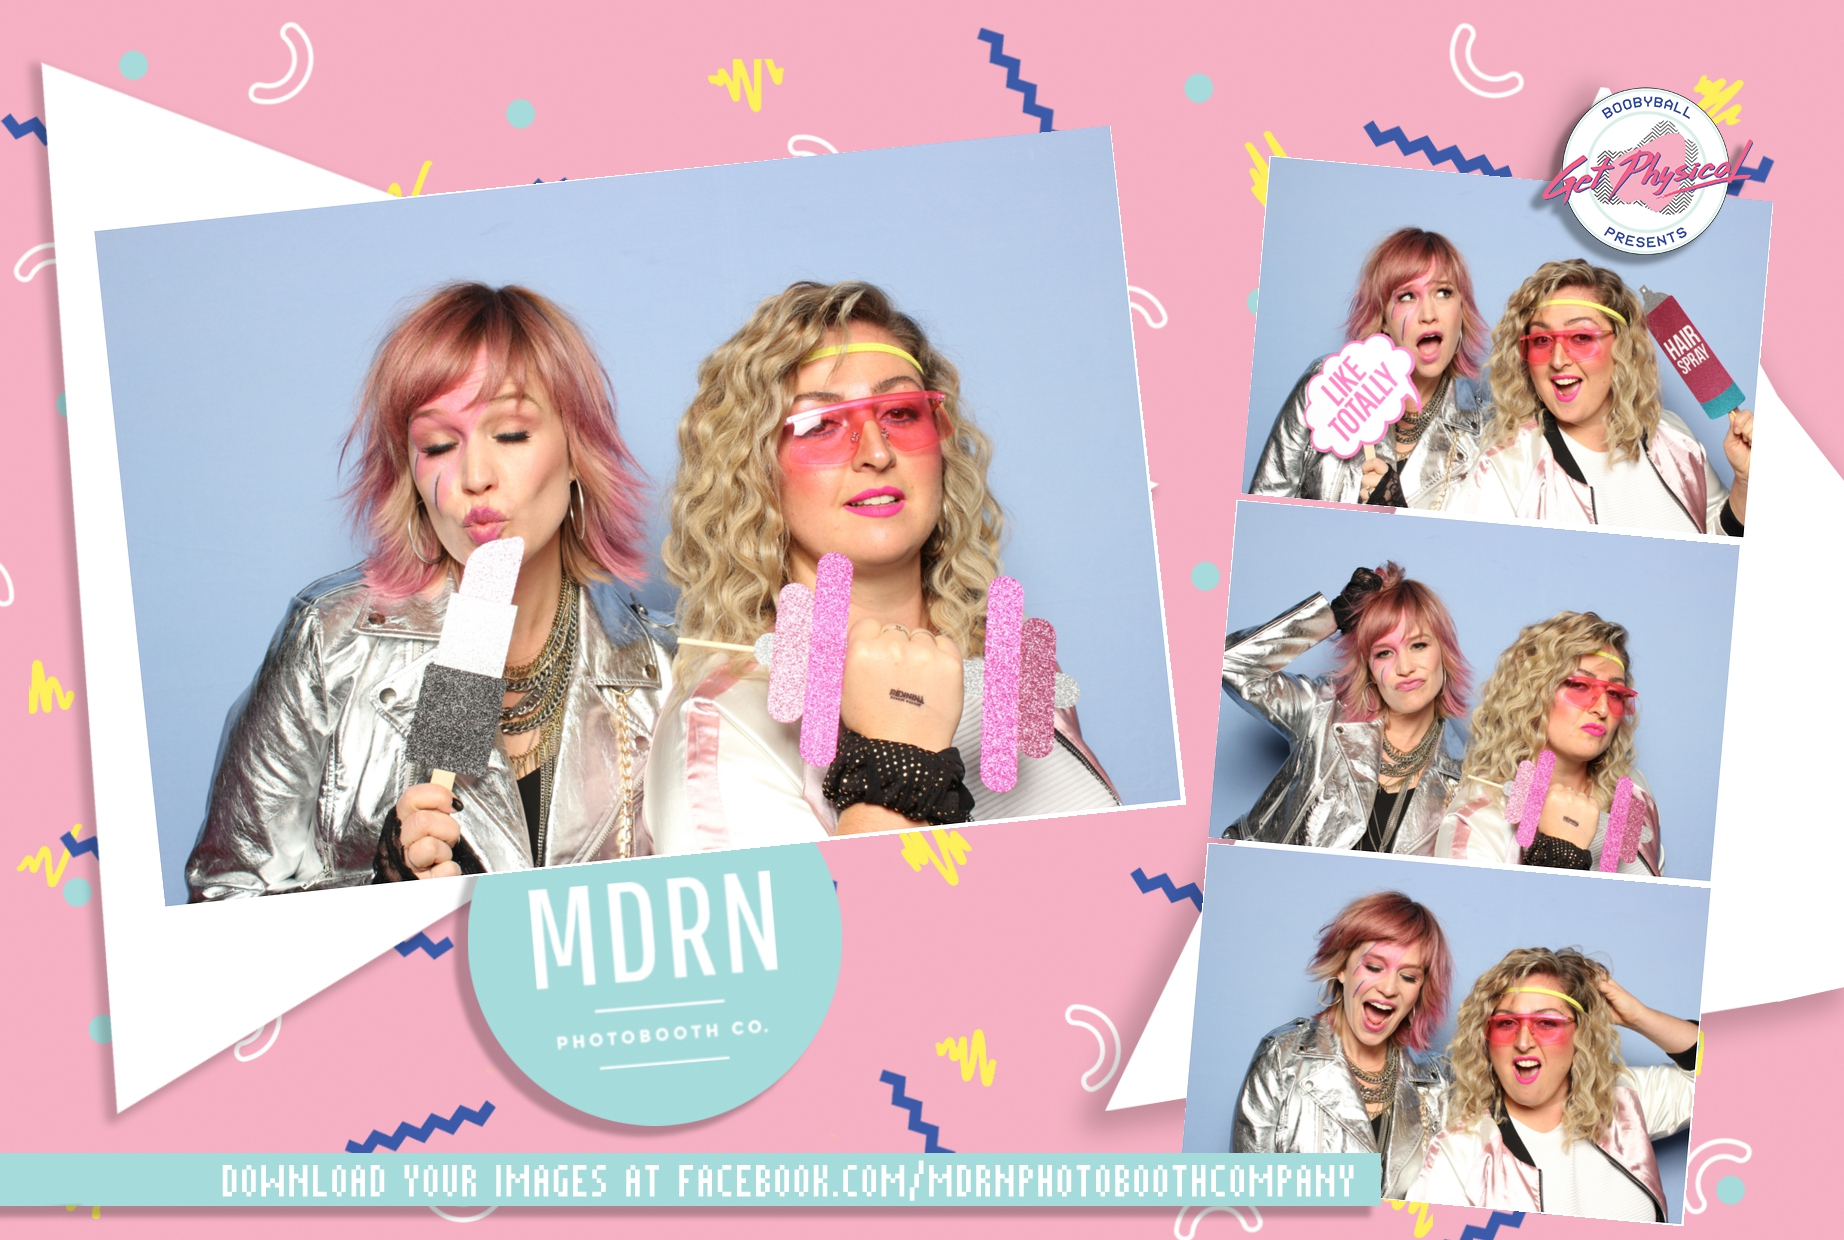 Boobyball mdrn photobooth company sponsorship template